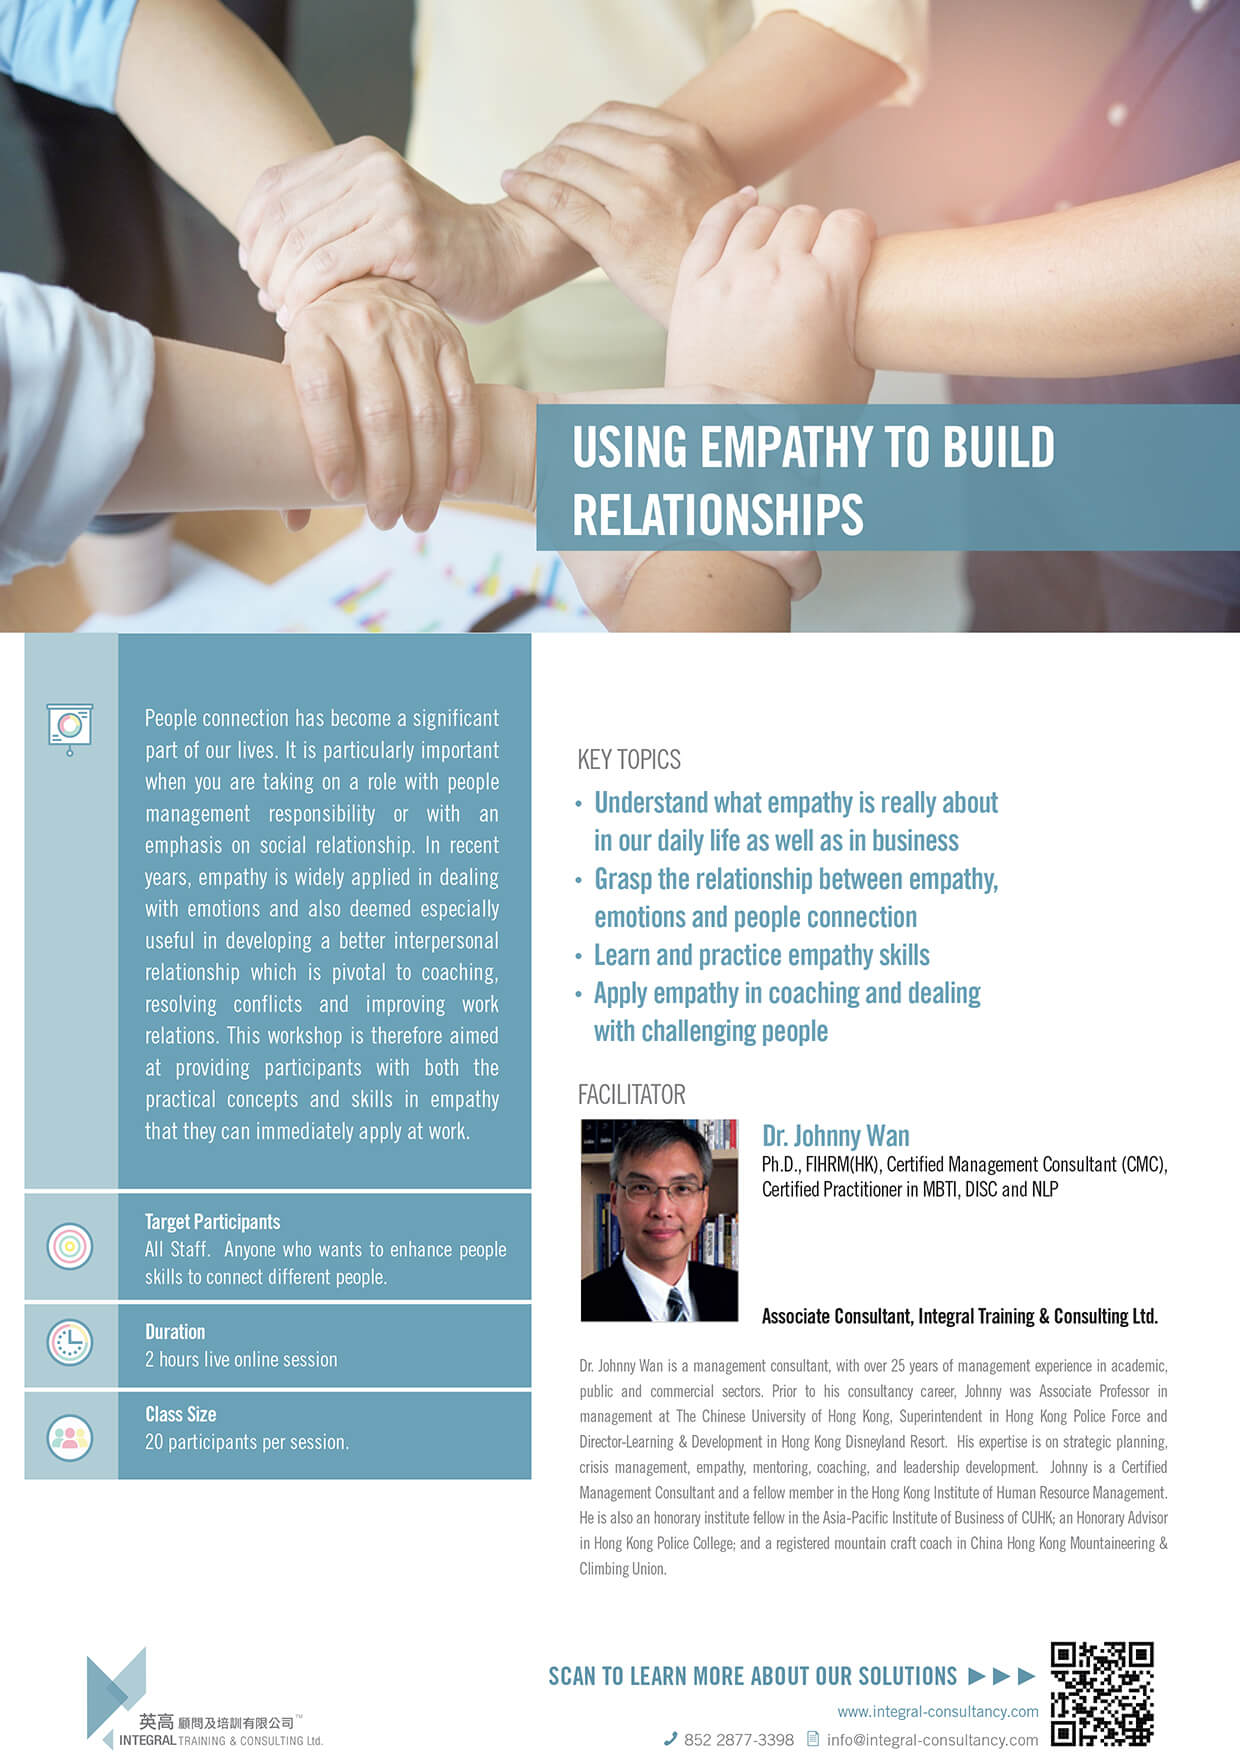 Using Empathy to Build Relationship